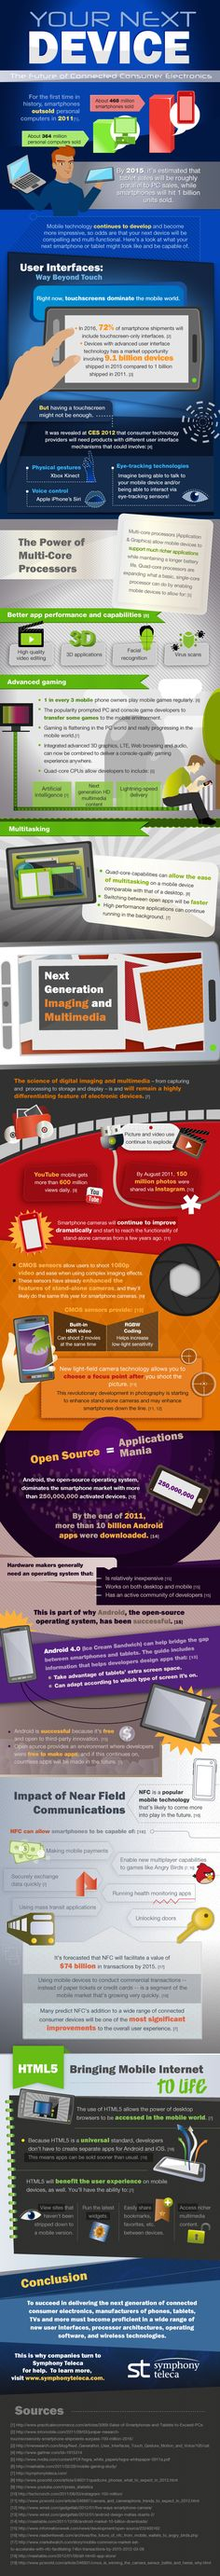 Future iPhone Android and Smartphone expectations [infographics] Mobile Marketing, Internet Marketing, Social Media Marketing, Digital Marketing, Marketing Strategies, Marketing Plan, Inbound Marketing, Content Marketing, Mobile Technology